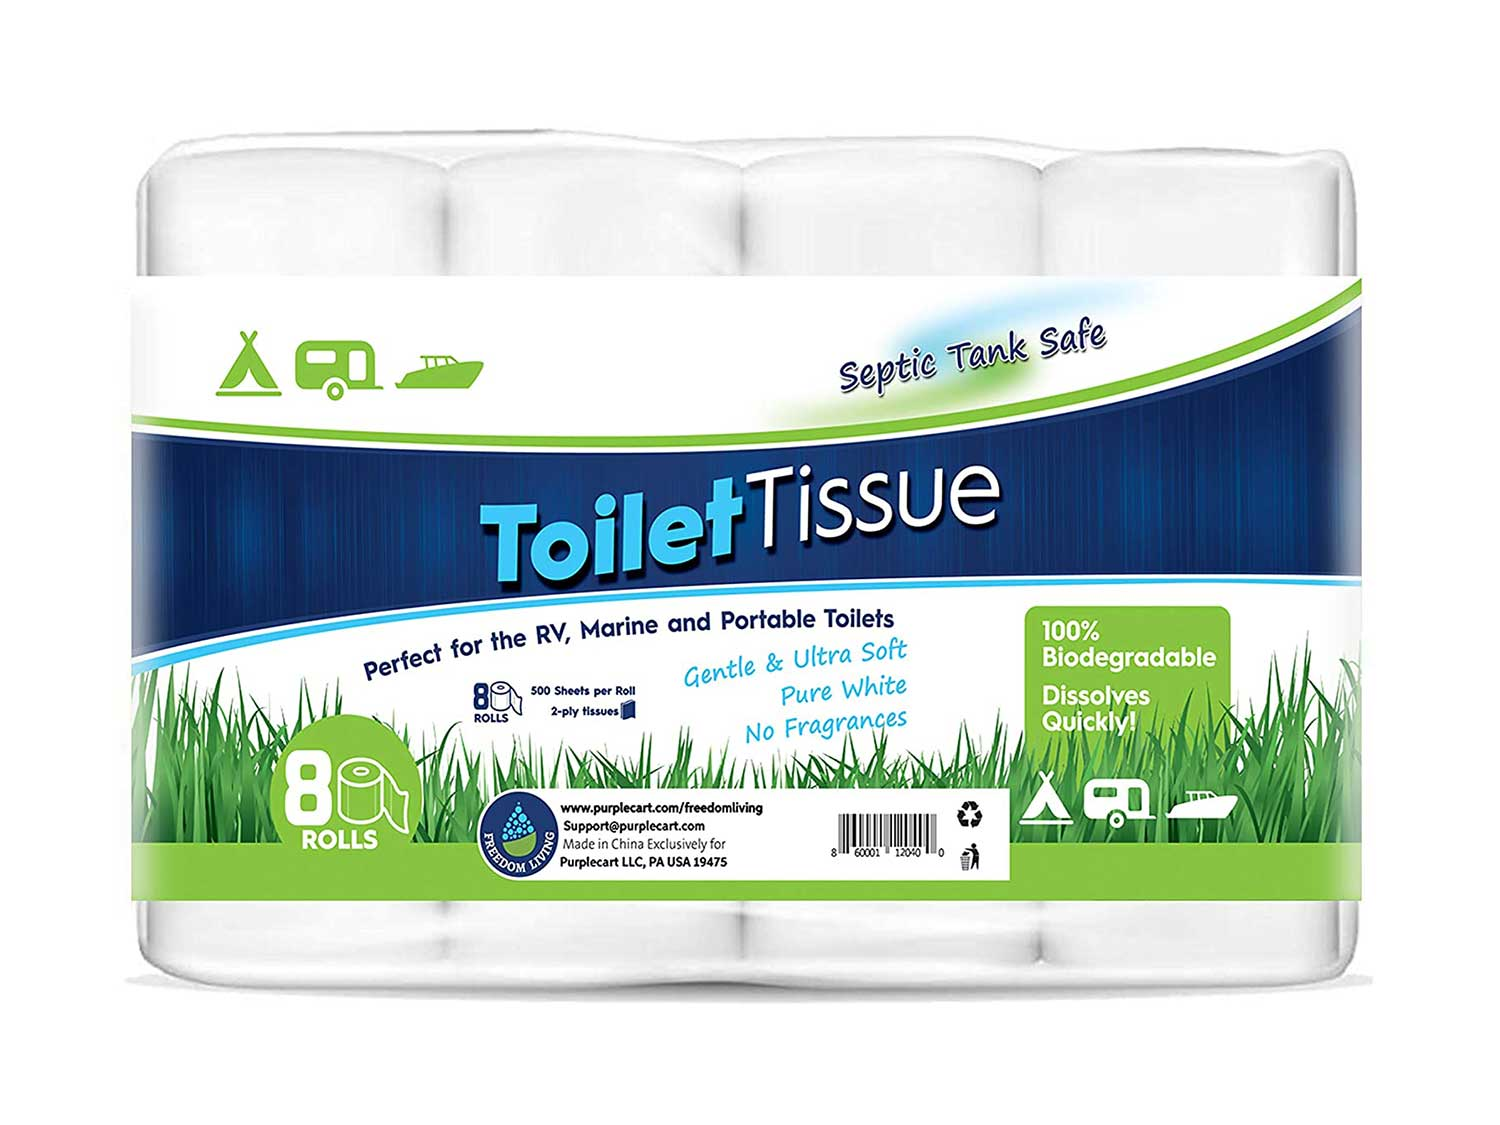 Freedom Living RV Toilet Paper (2-Ply, 8 Rolls, 500 sheets each) - Biodegradable Septic Tank Safe Rapid Dissolve Toilet Tissue for Camping, Marine, RV Holding